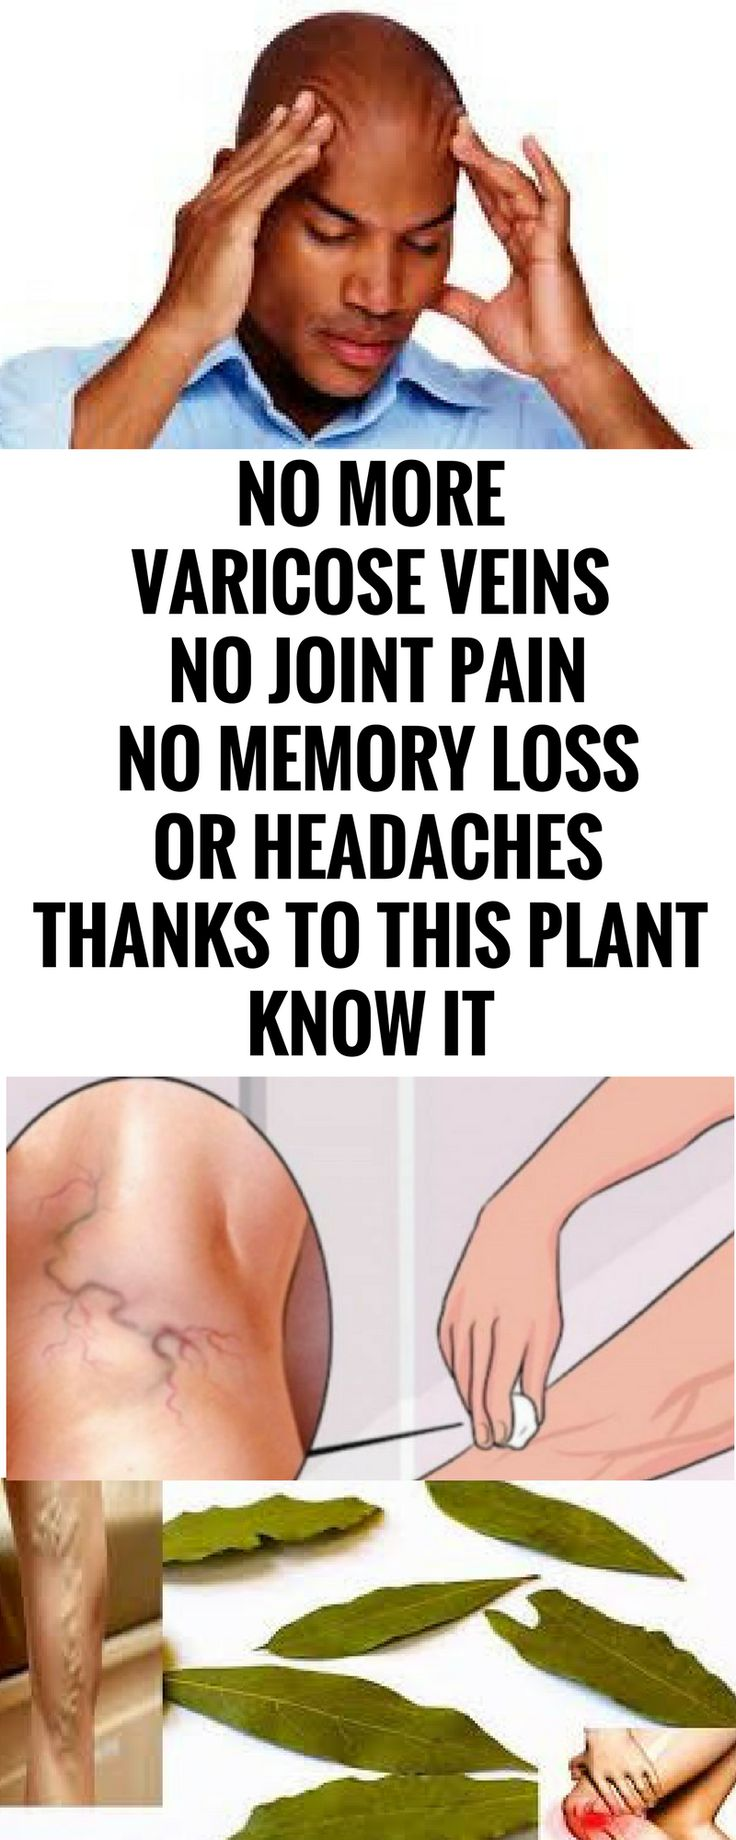 NO MORE VARICOSE VEINS, NO JOINT PAIN, NO MEMORY LOSS, OR HEADACHES THANKS TO THIS PLANT, KNOW IT